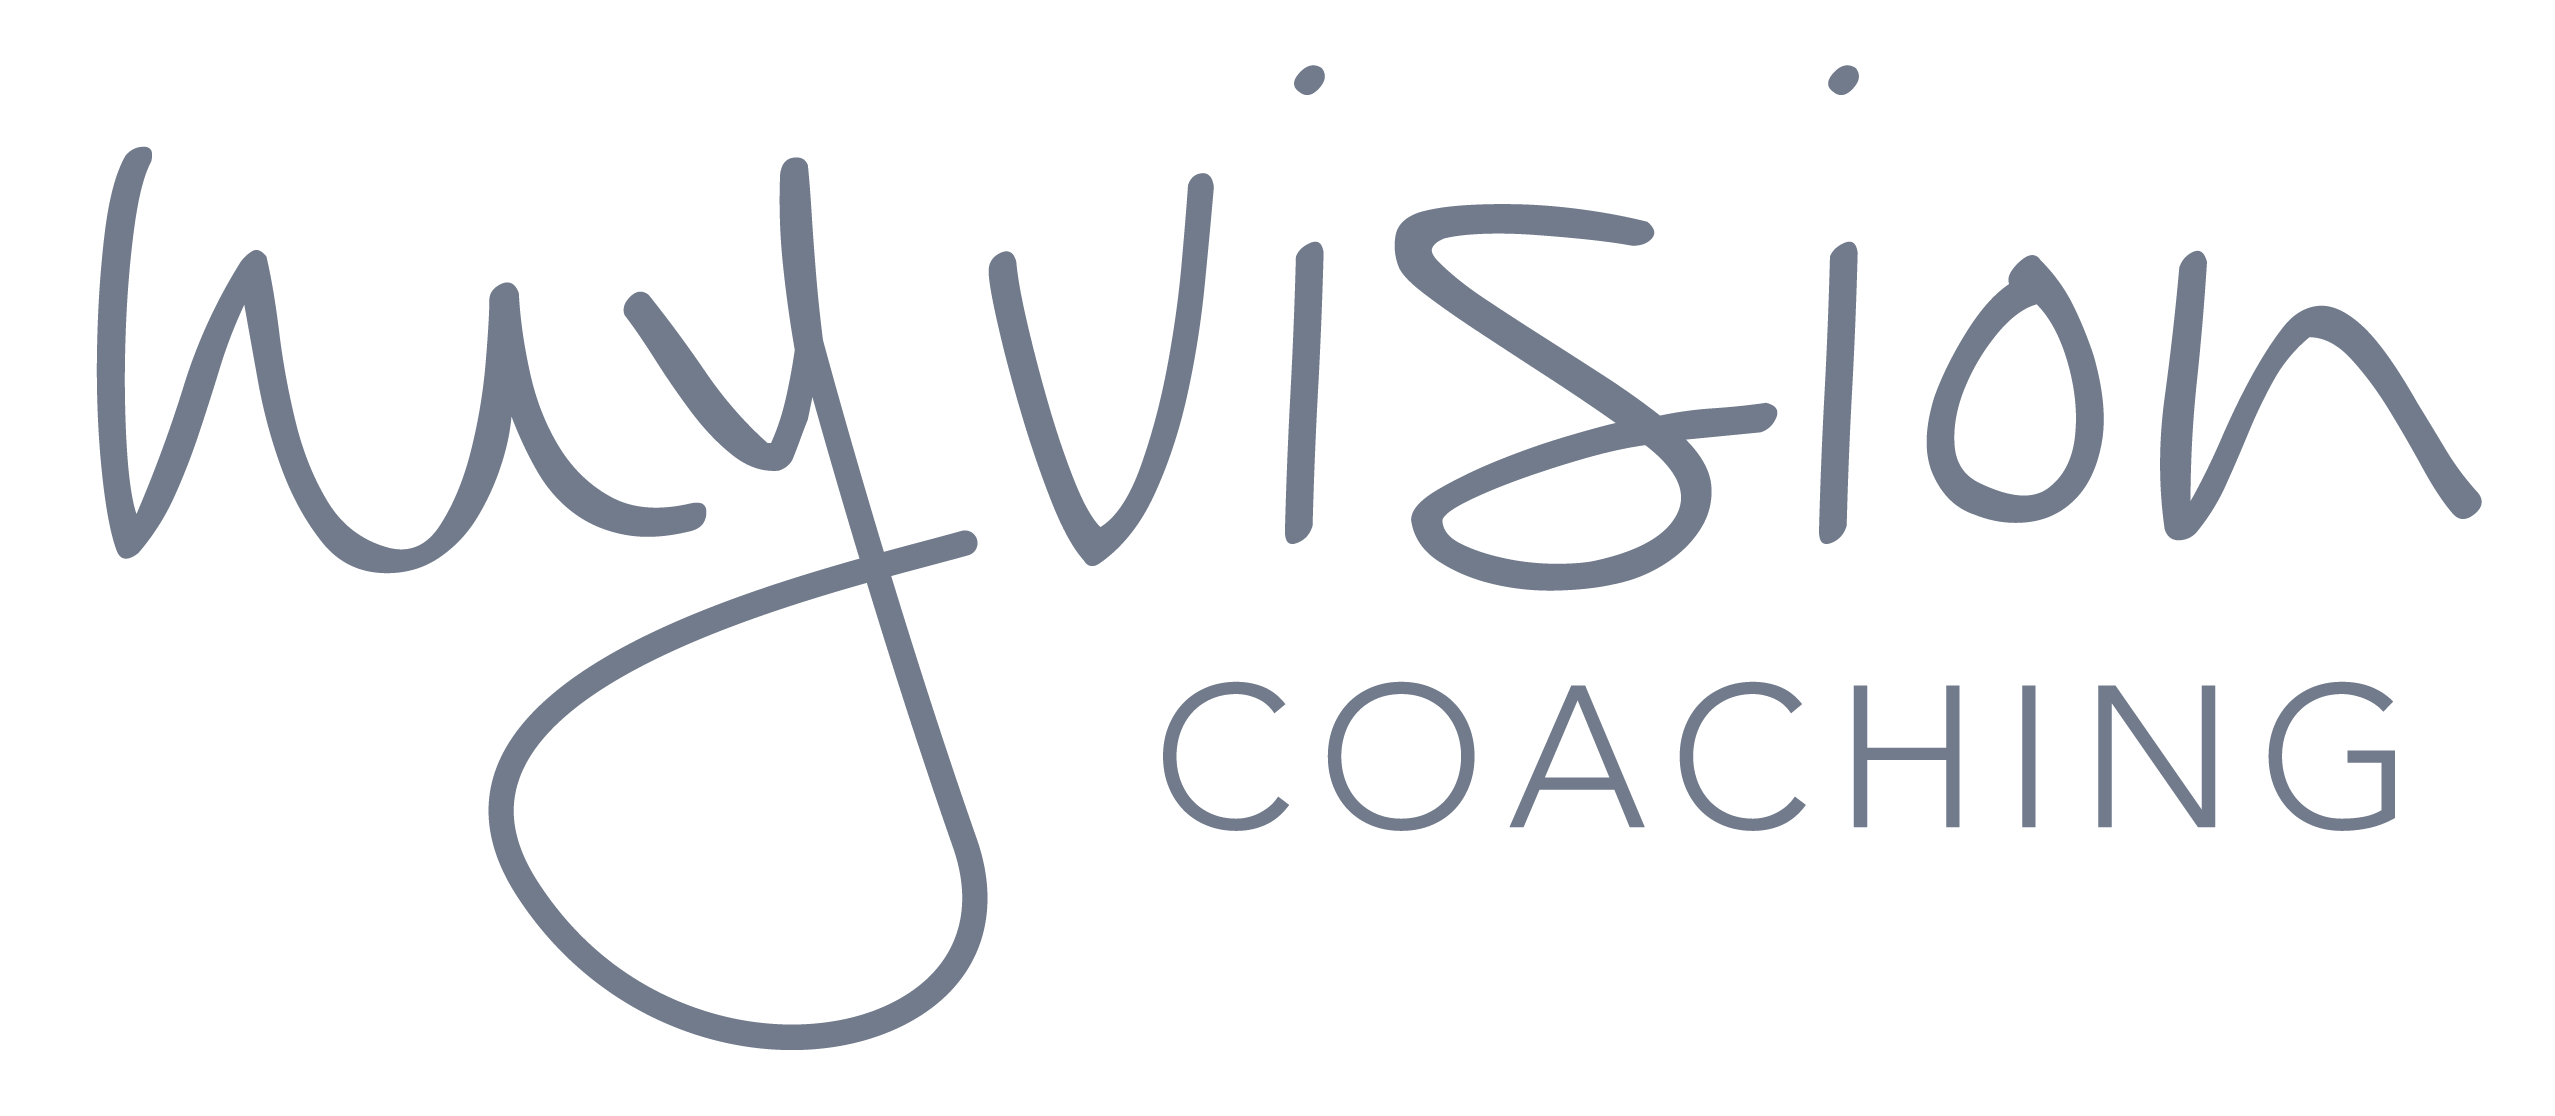 my vision coaching